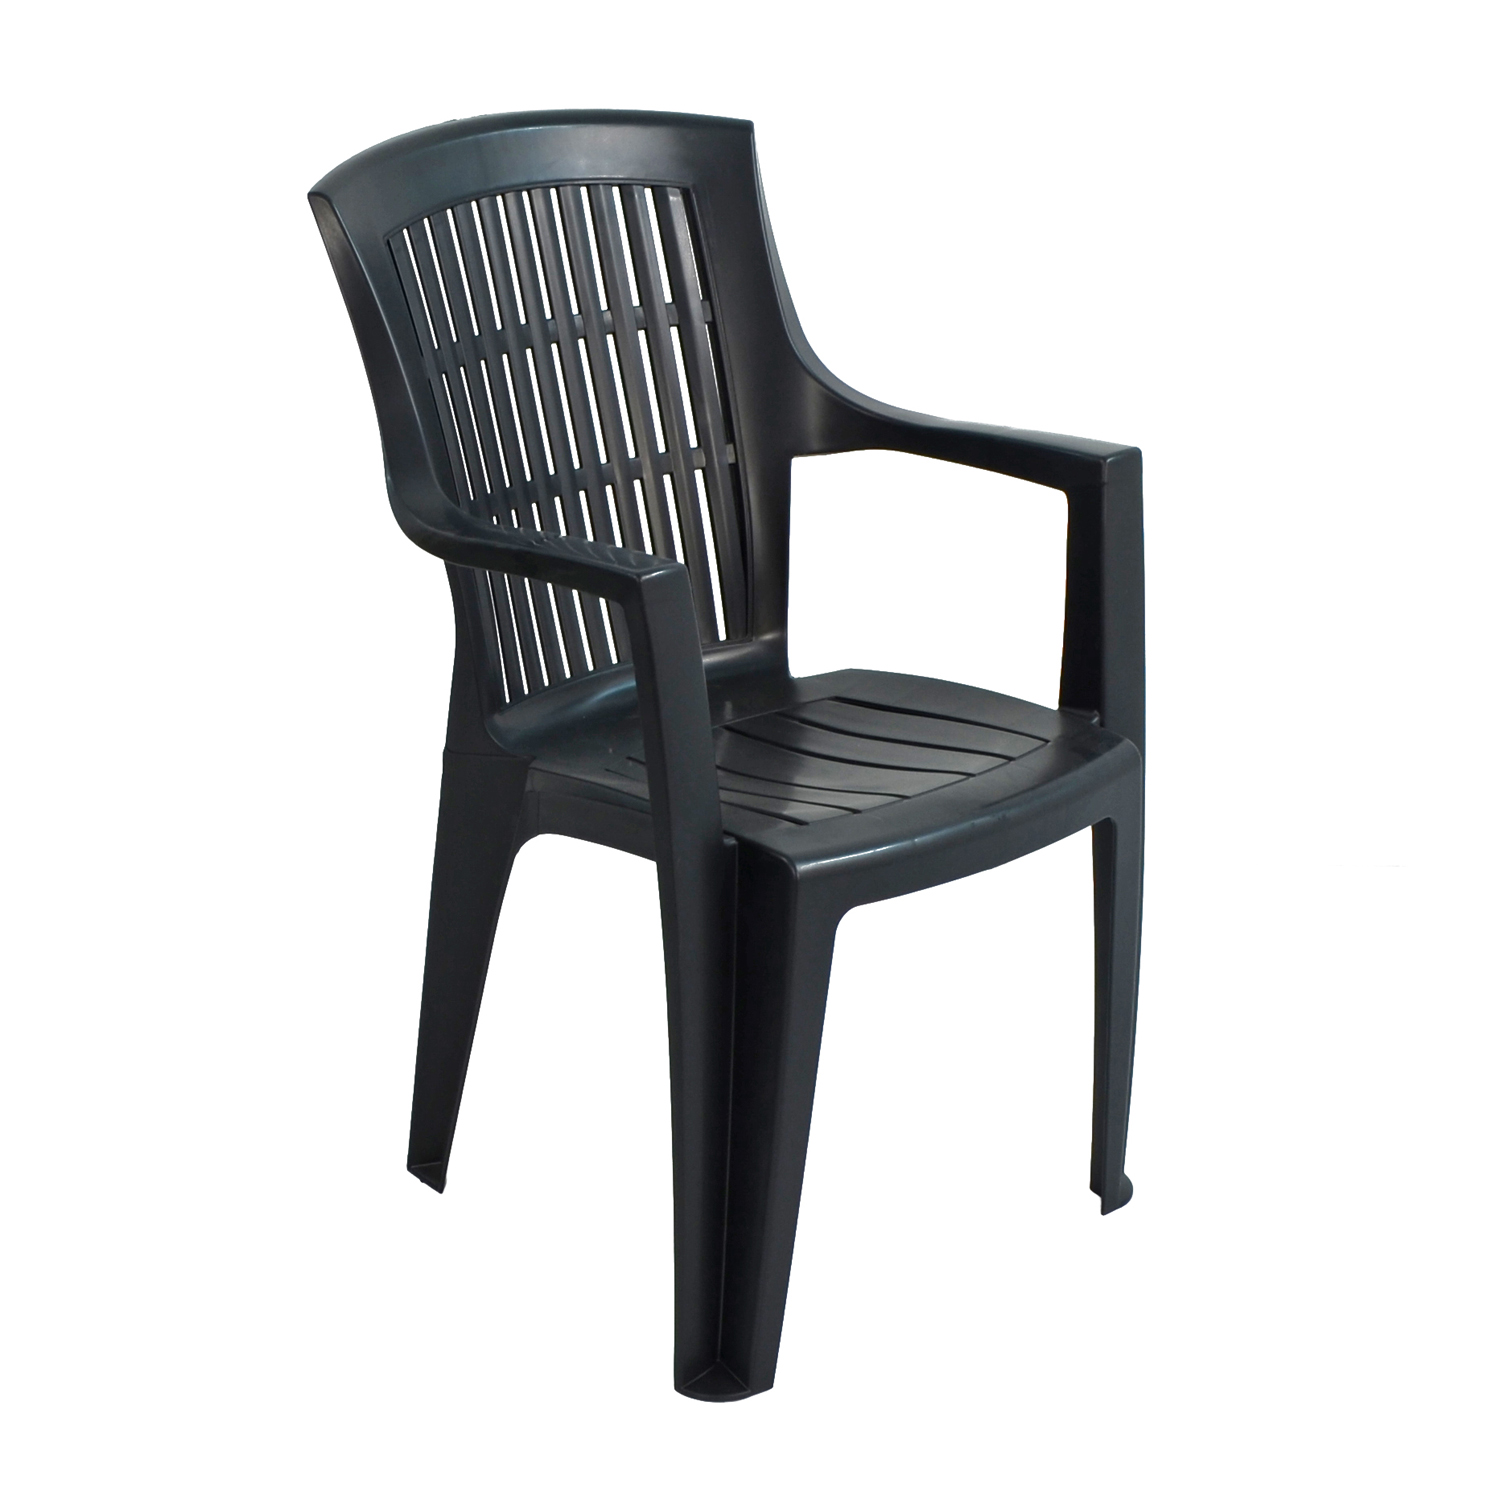 PARMA STACK CHAIR ANTHRACITE FRONT RIGHT